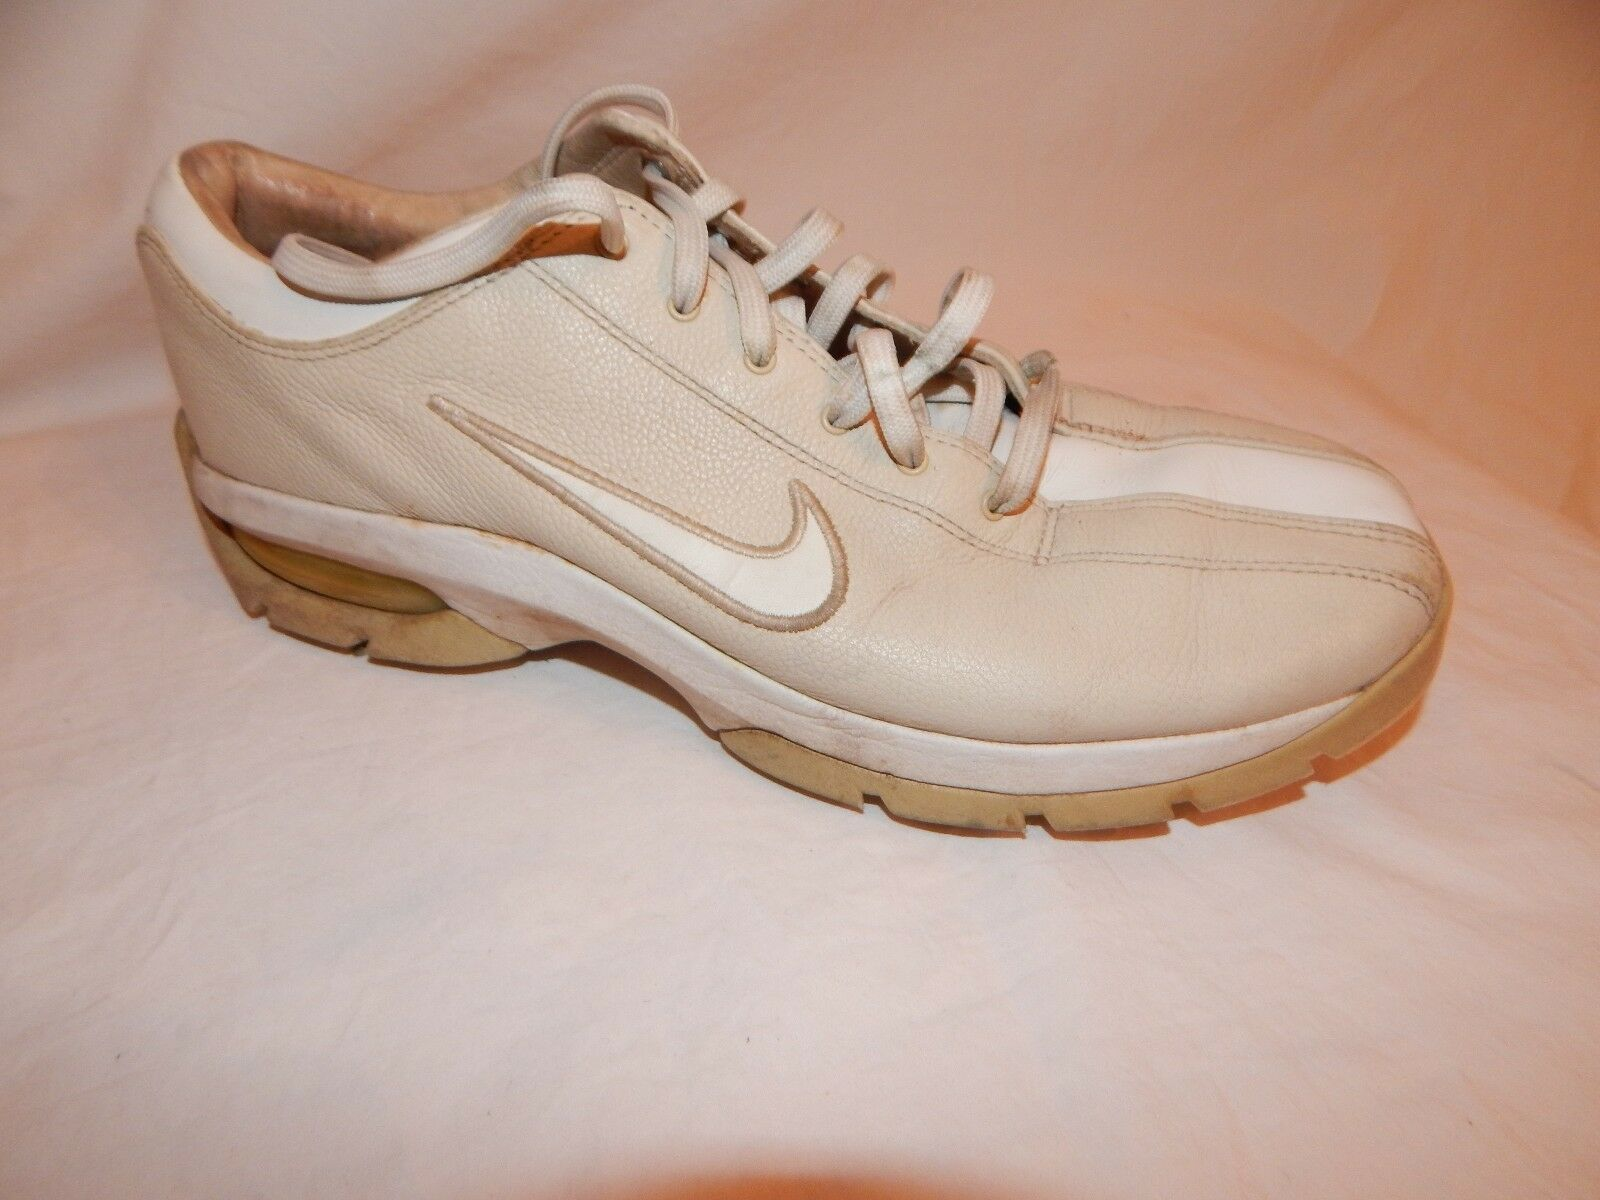 Ladies Shoes Nike Sport Performance Golf Shoes Ladies size  7.5 Tan White ae3927